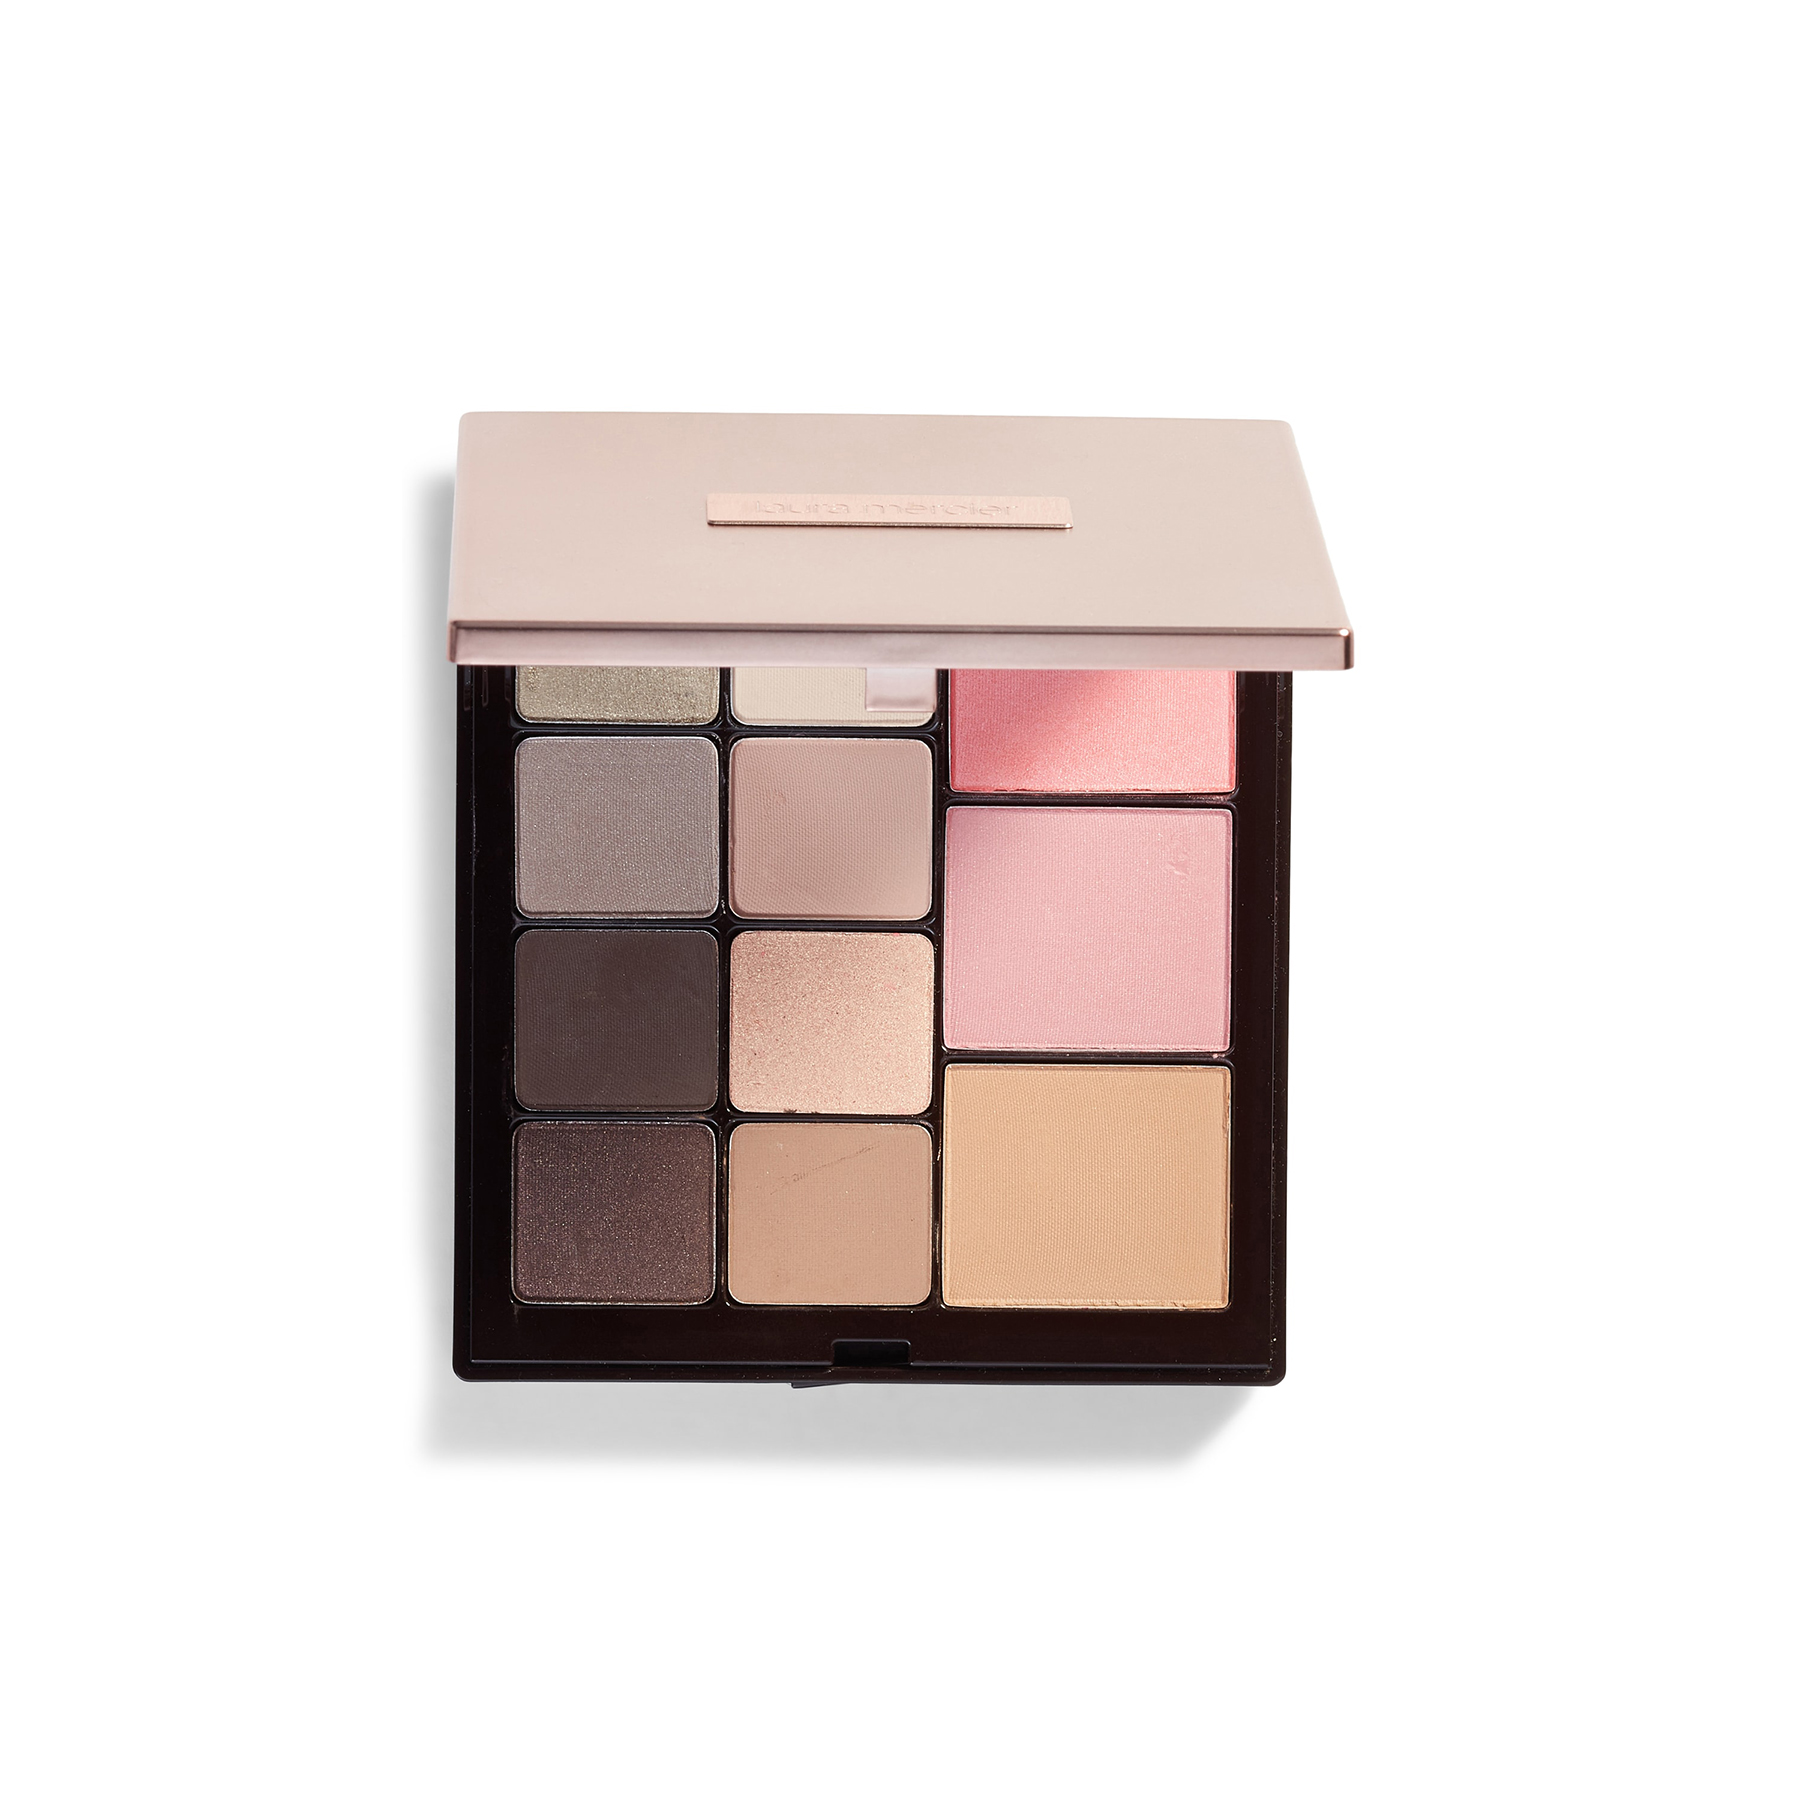 Laura Mercier Eye and Cheek Palette